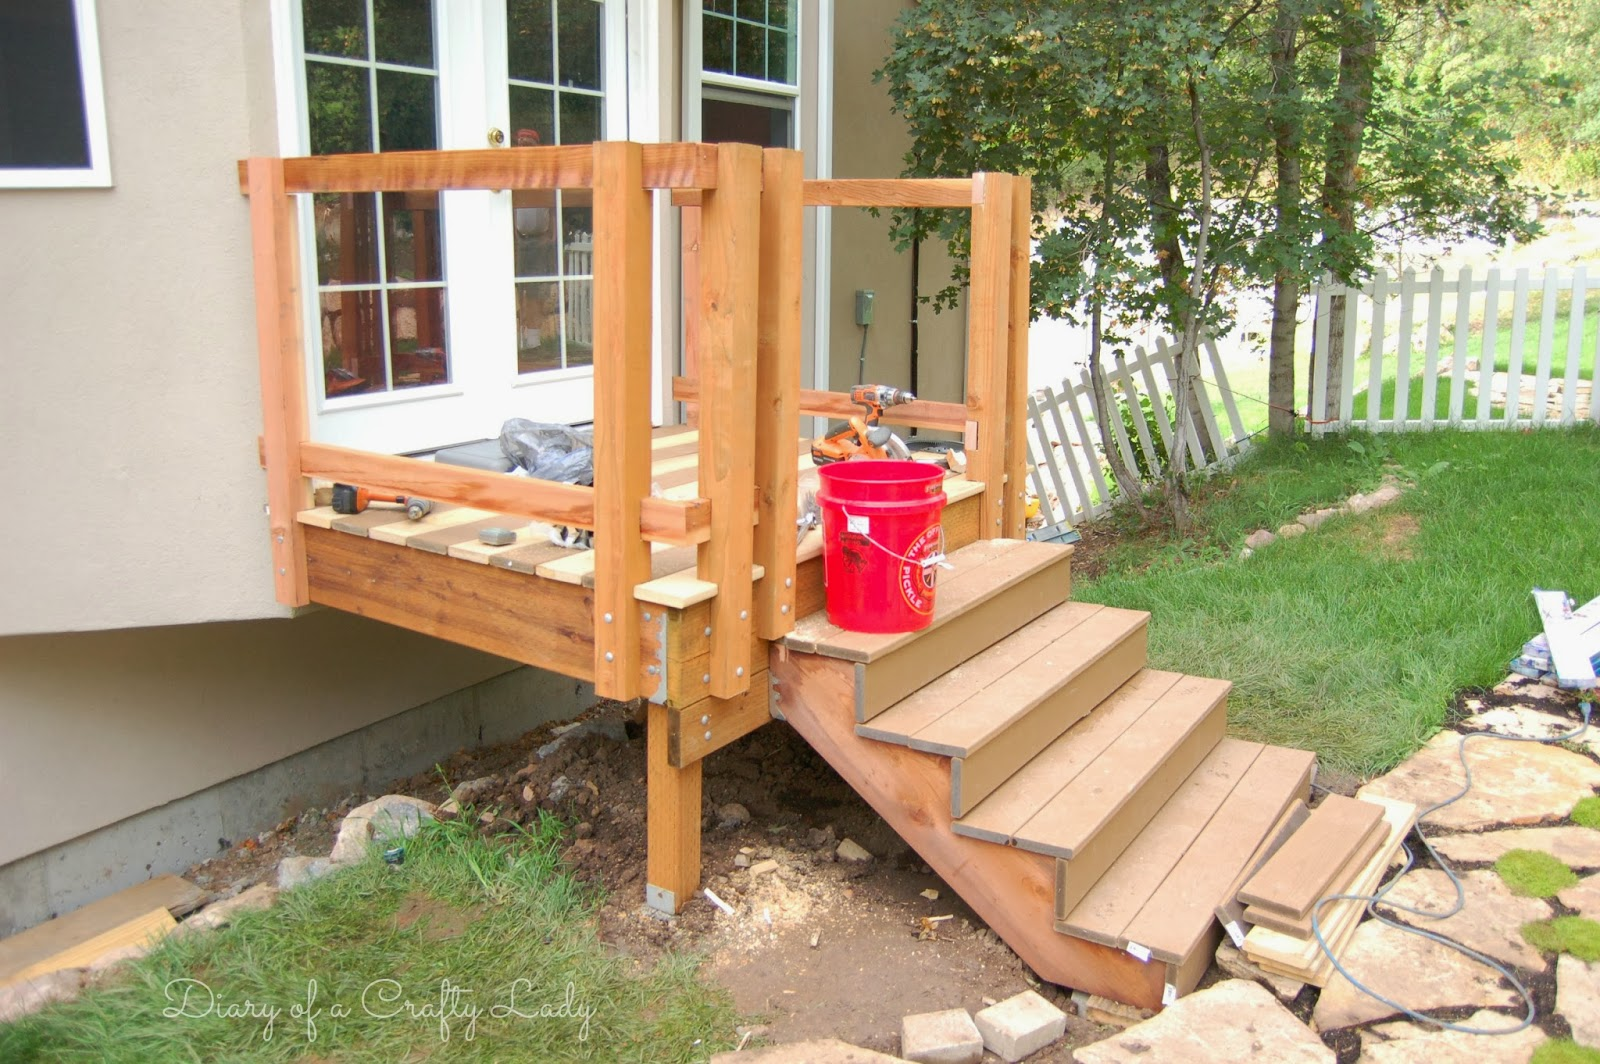 Diary of a Crafty Lady: Building a Deck {A Power Tool Project}